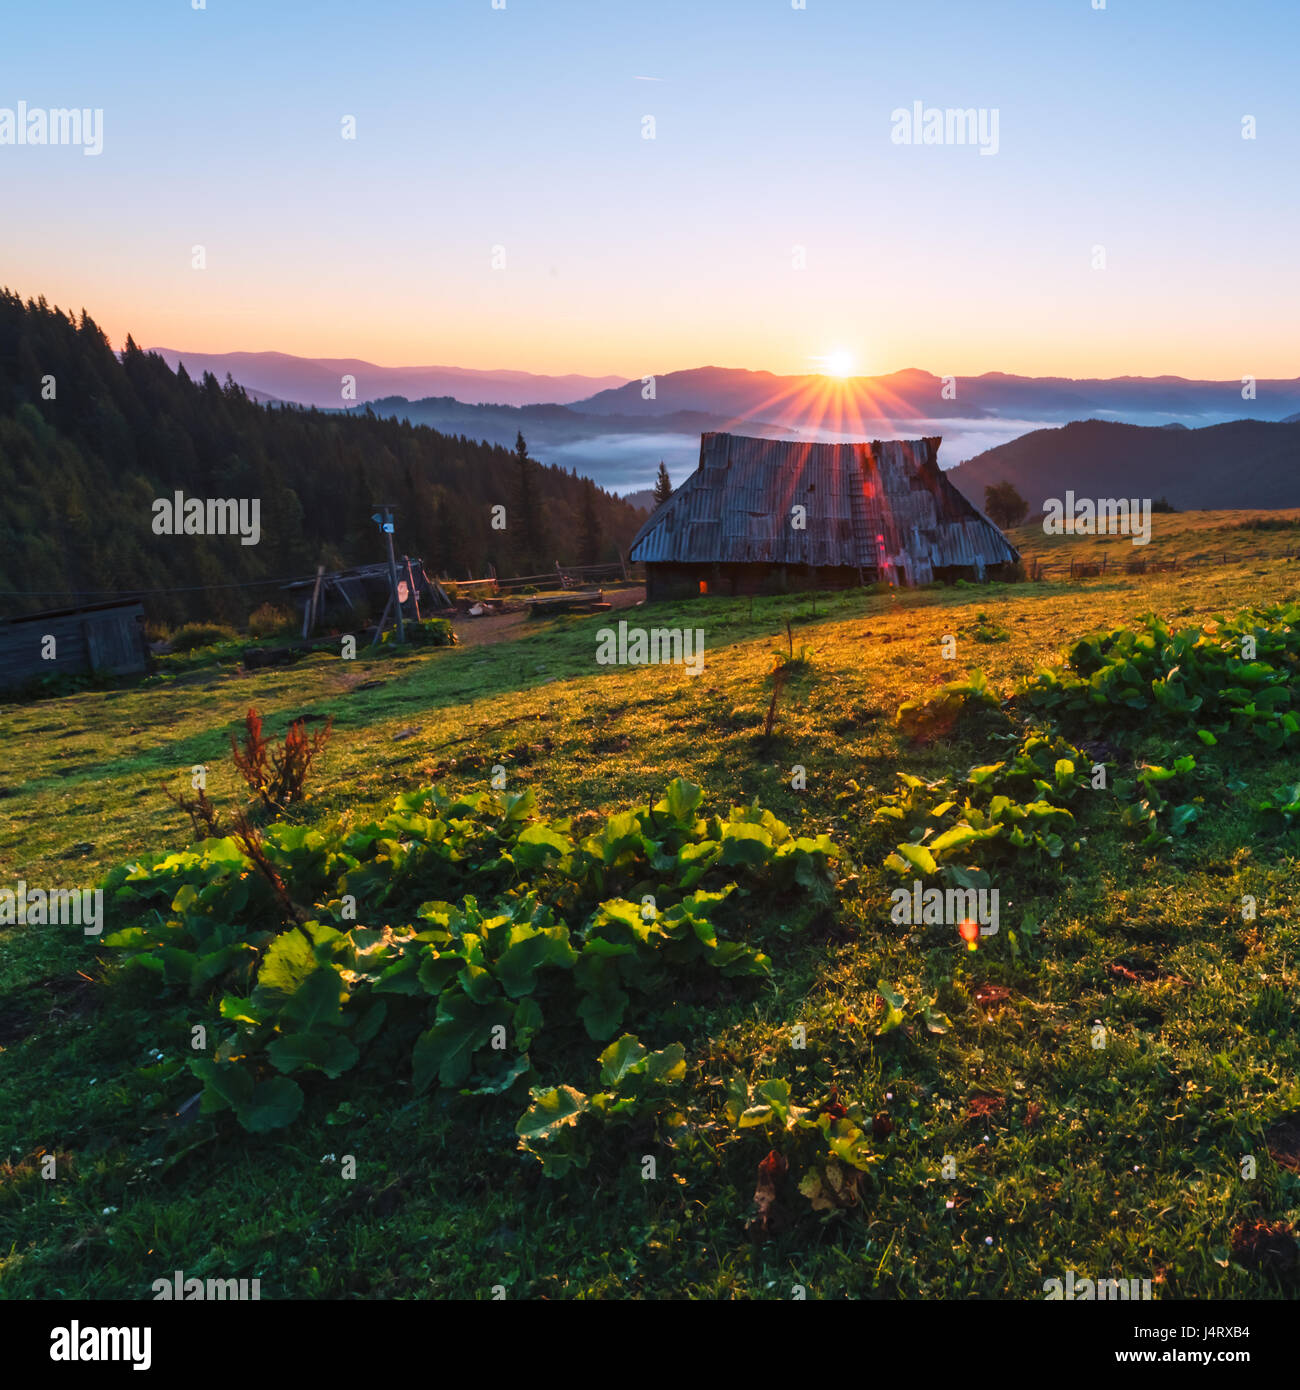 Shepherd house in high mountain. Orange sunrice glowing by sunlight. Summer time in highland - Stock Image